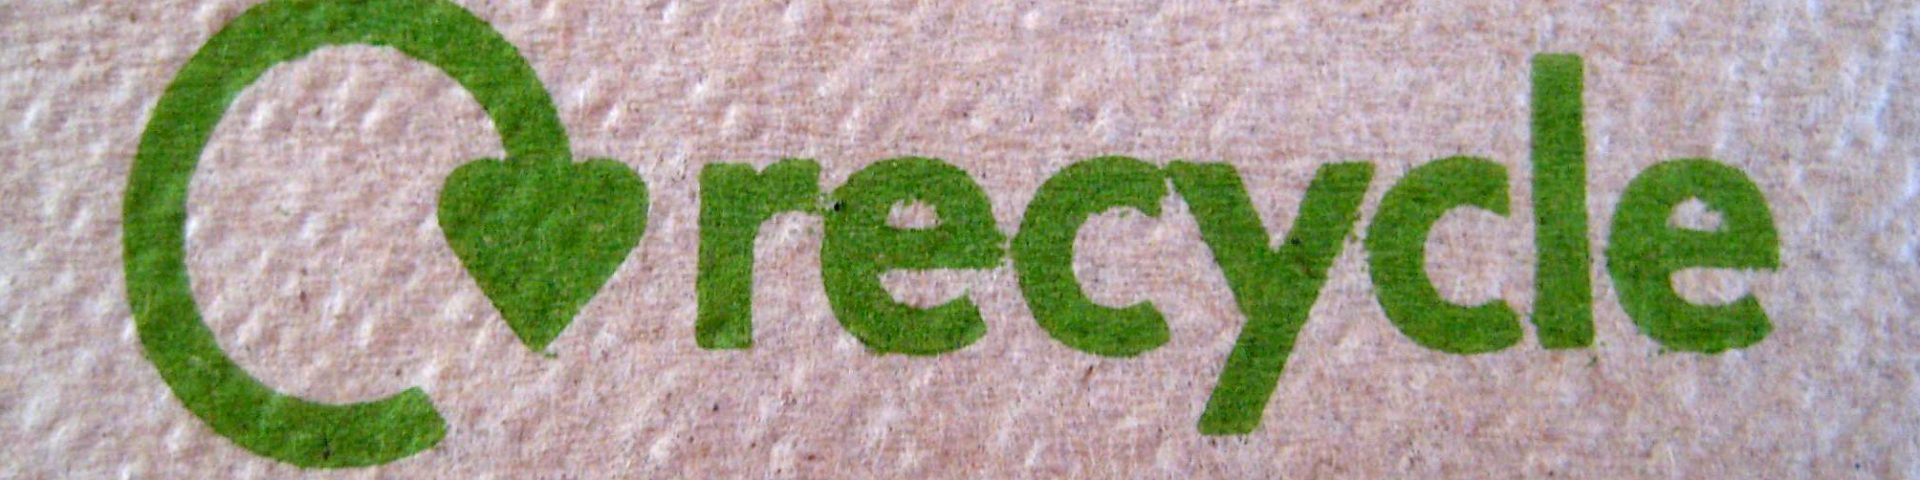 Recycling Symbols And Their Meanings Greenism